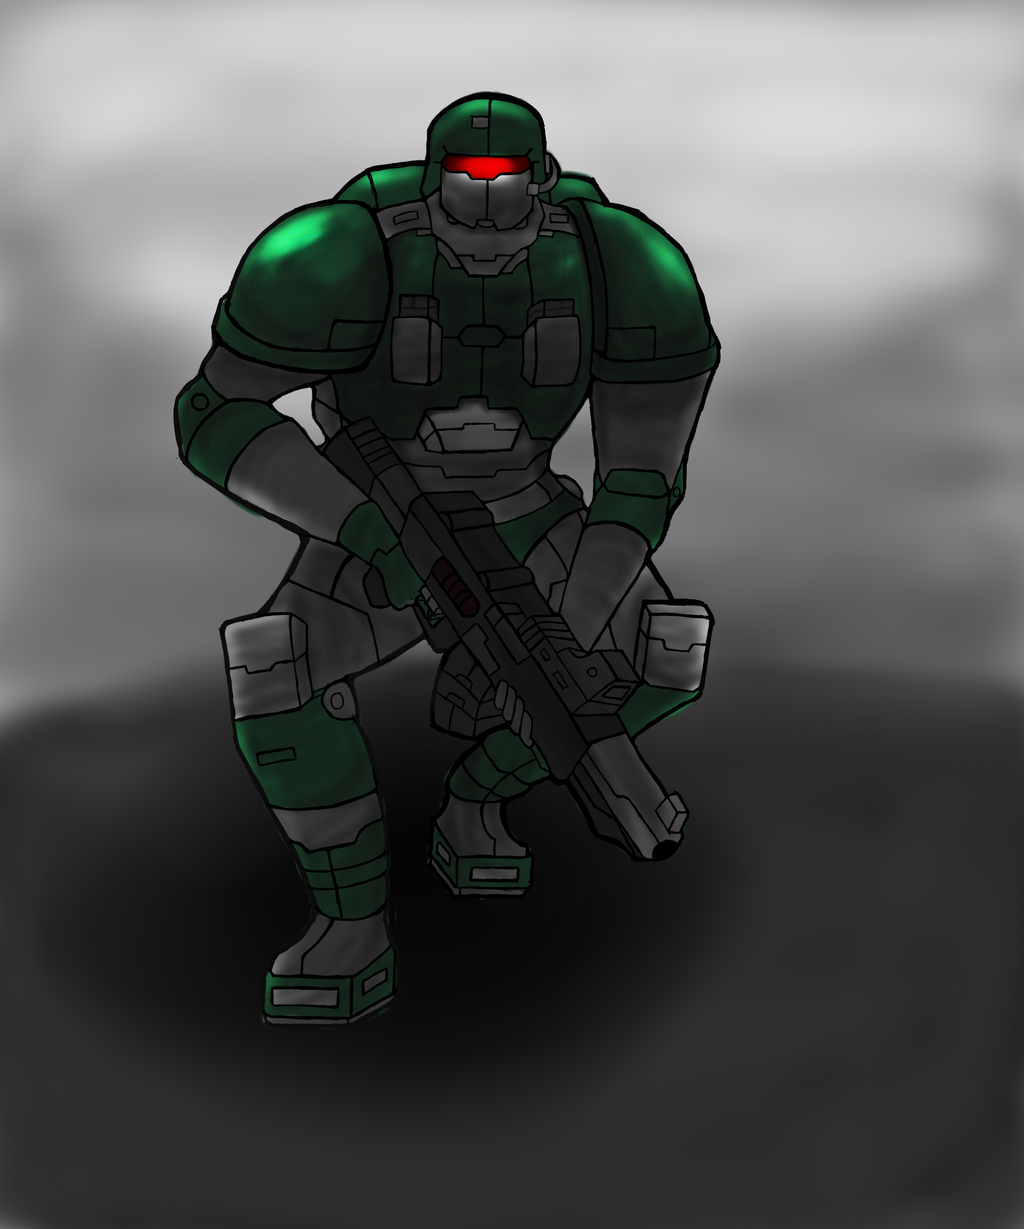 2512 Allied Forces Marine by ChromeFlames